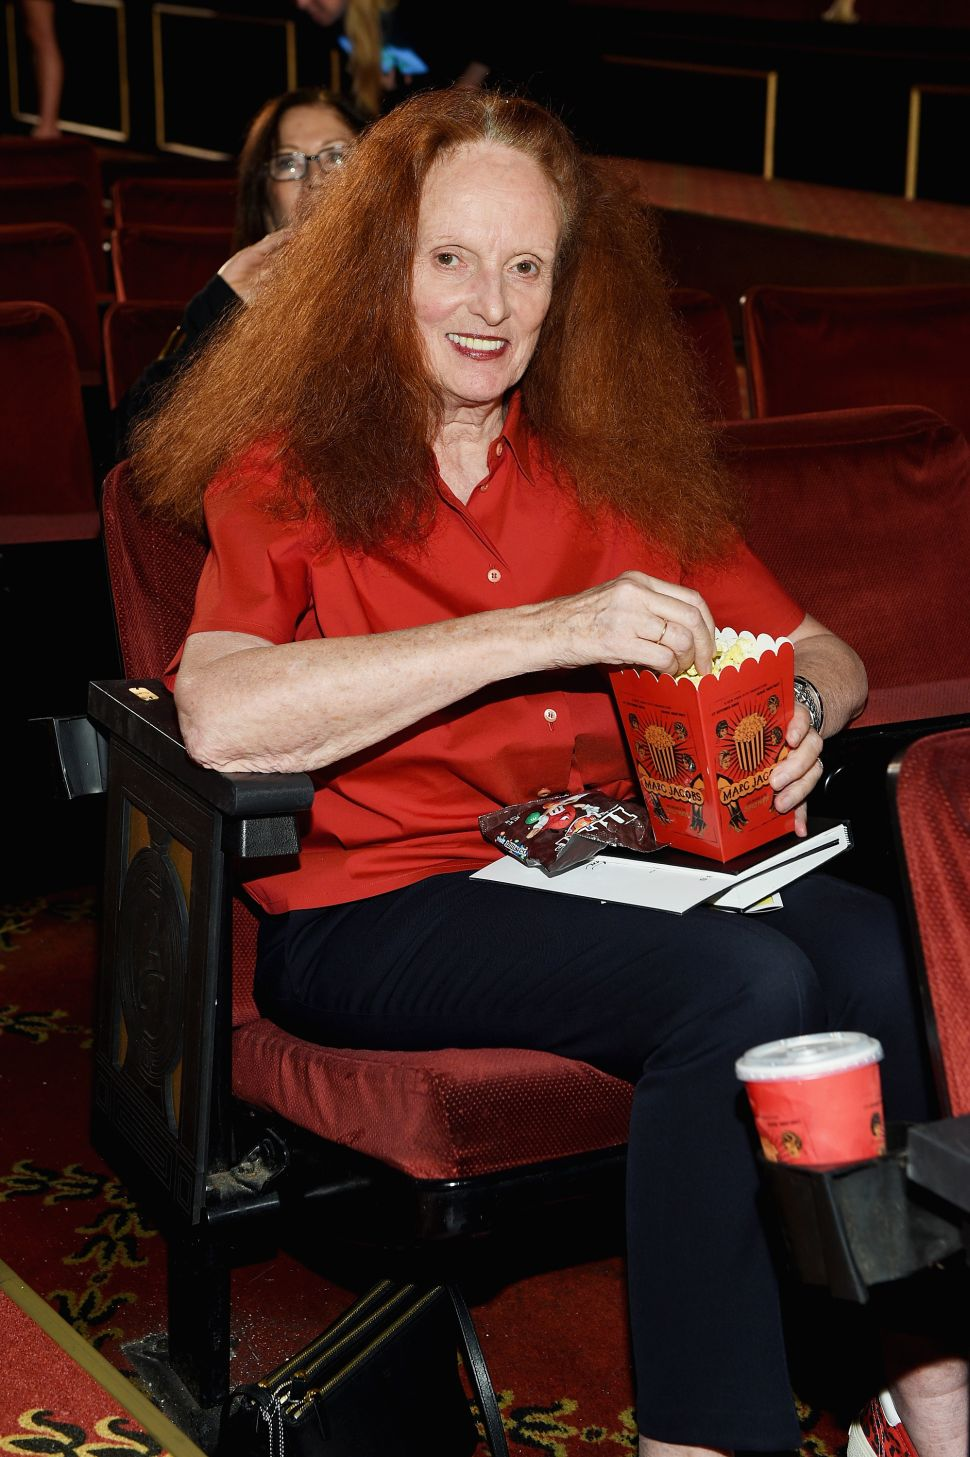 Fashion Roundup: Grace Coddington Confirms Film Deal, 'Top Model' Is Canceled